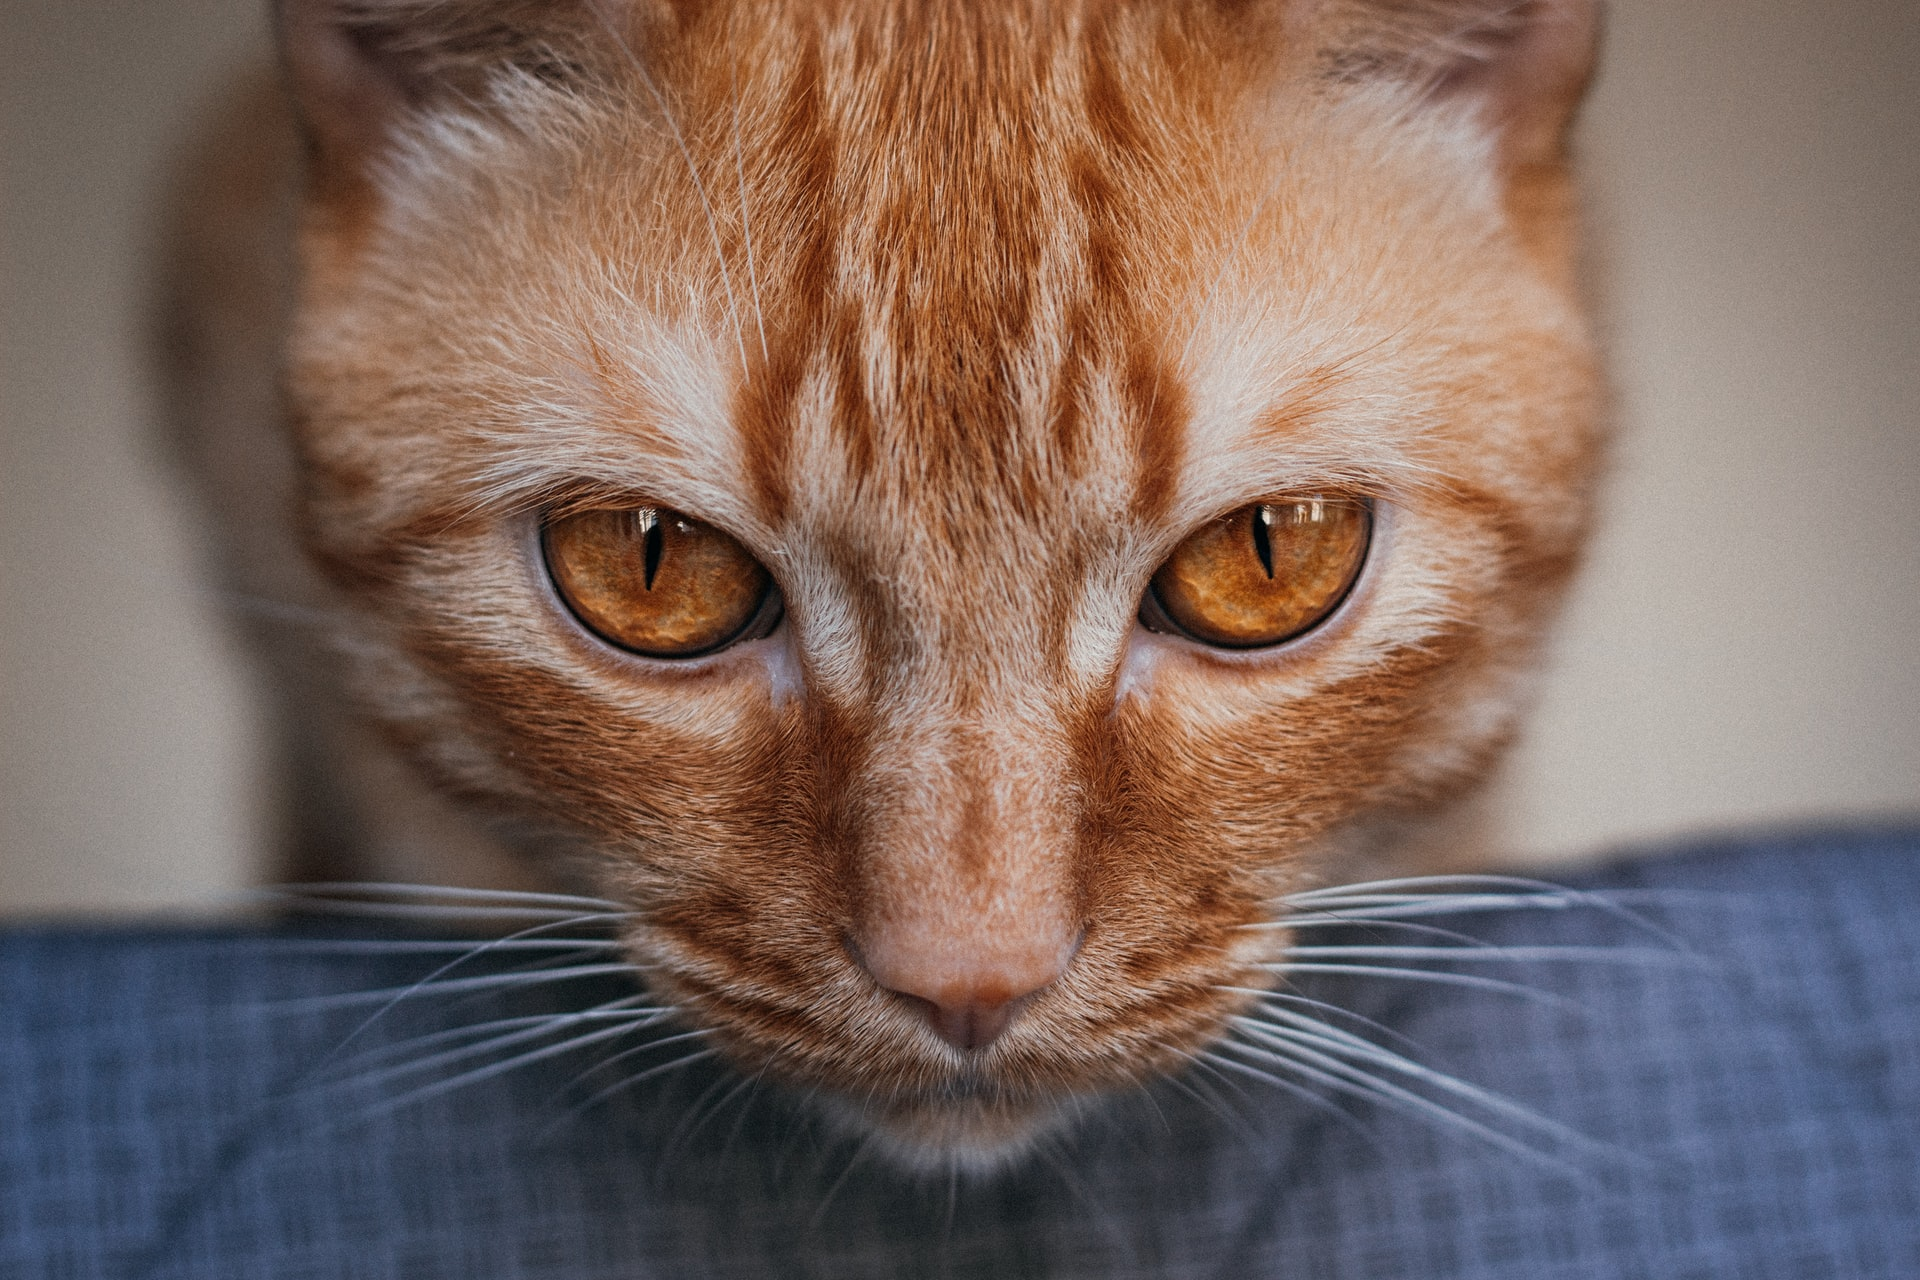 Orange cat looking at the viewer